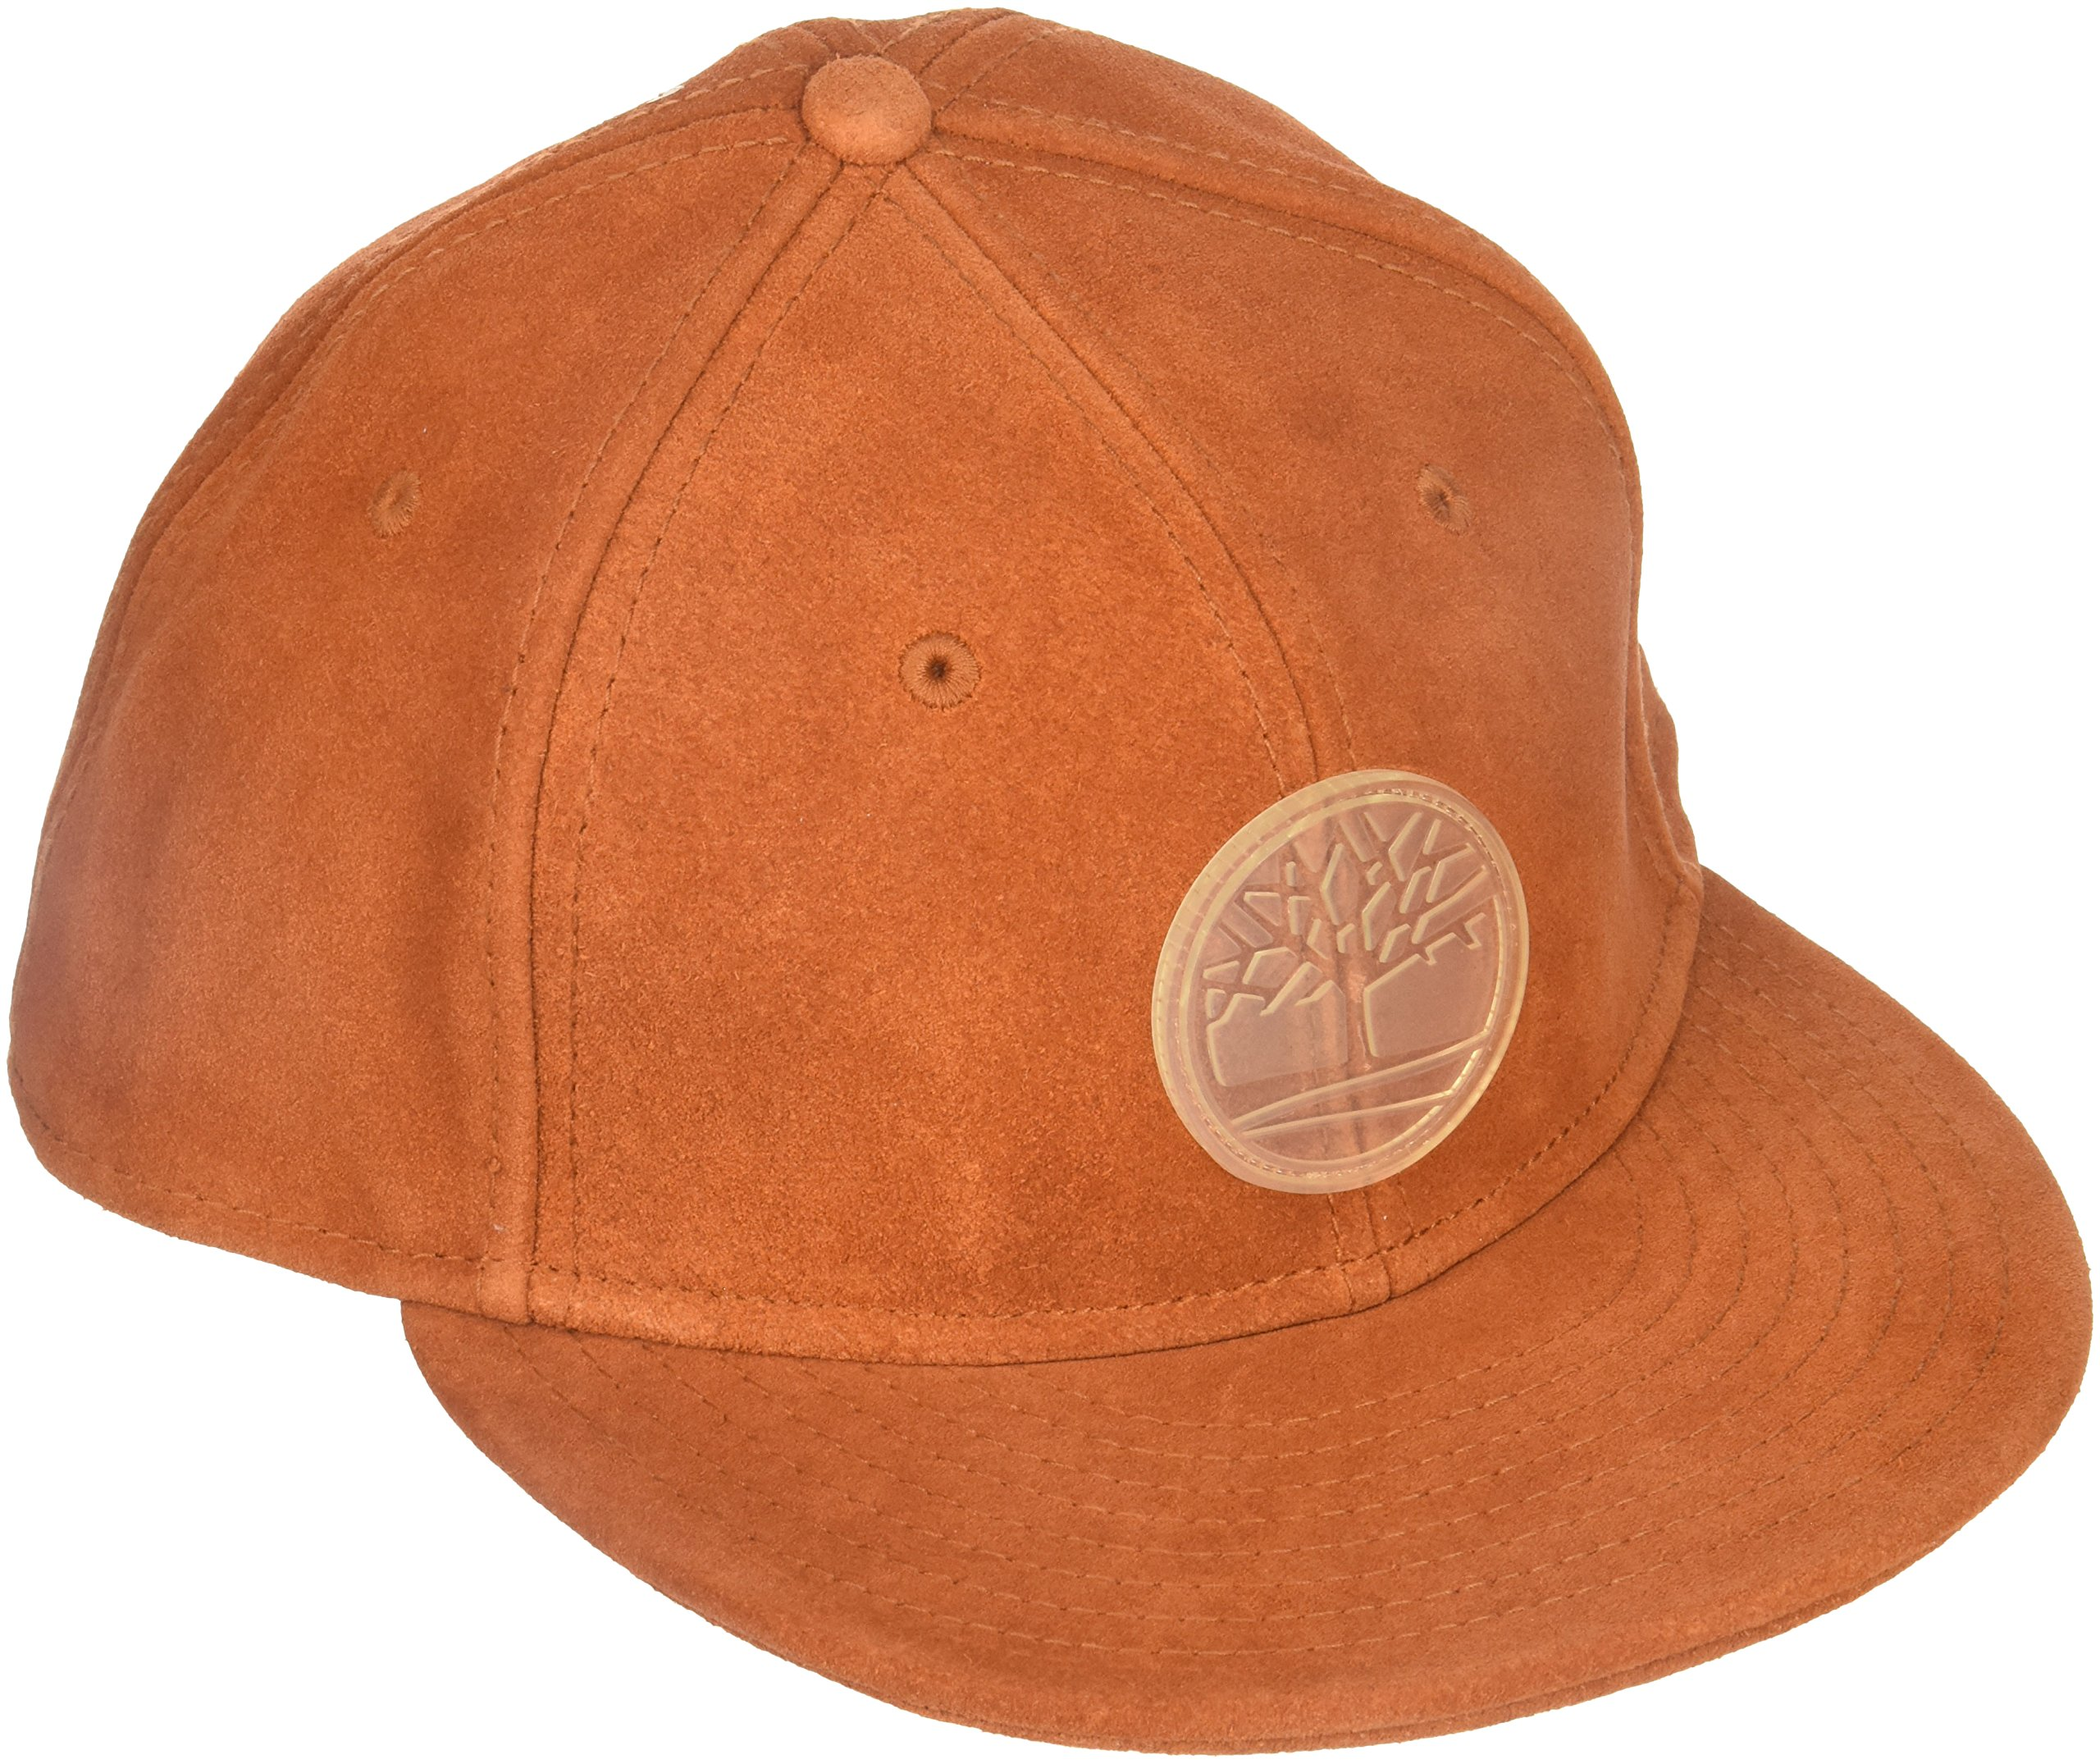 Timberland Men's Suede Flat Brim Hat, Rust, One Size